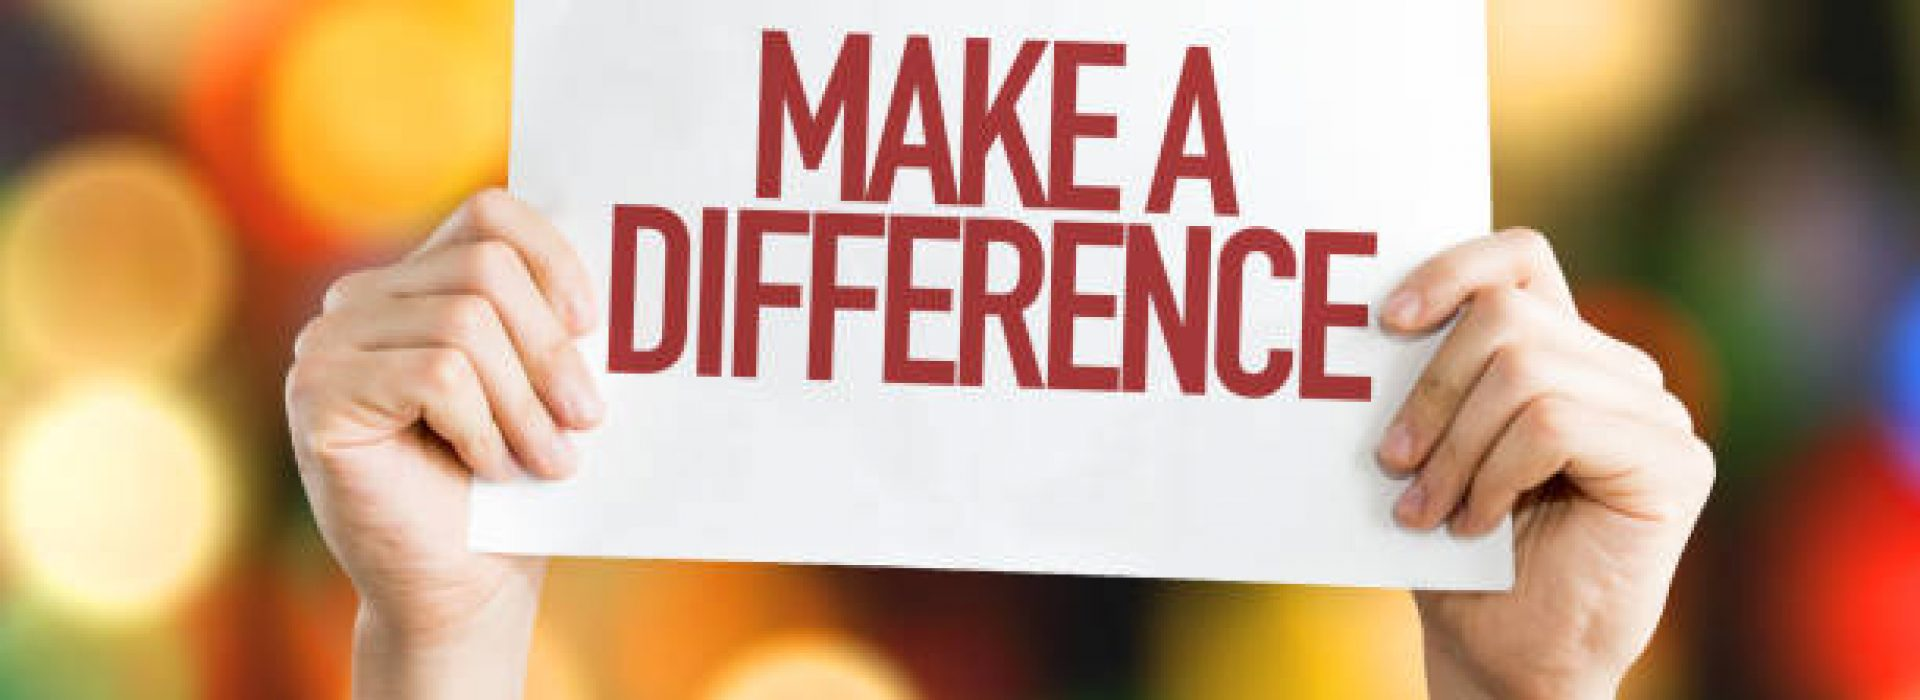 Make a Difference placard